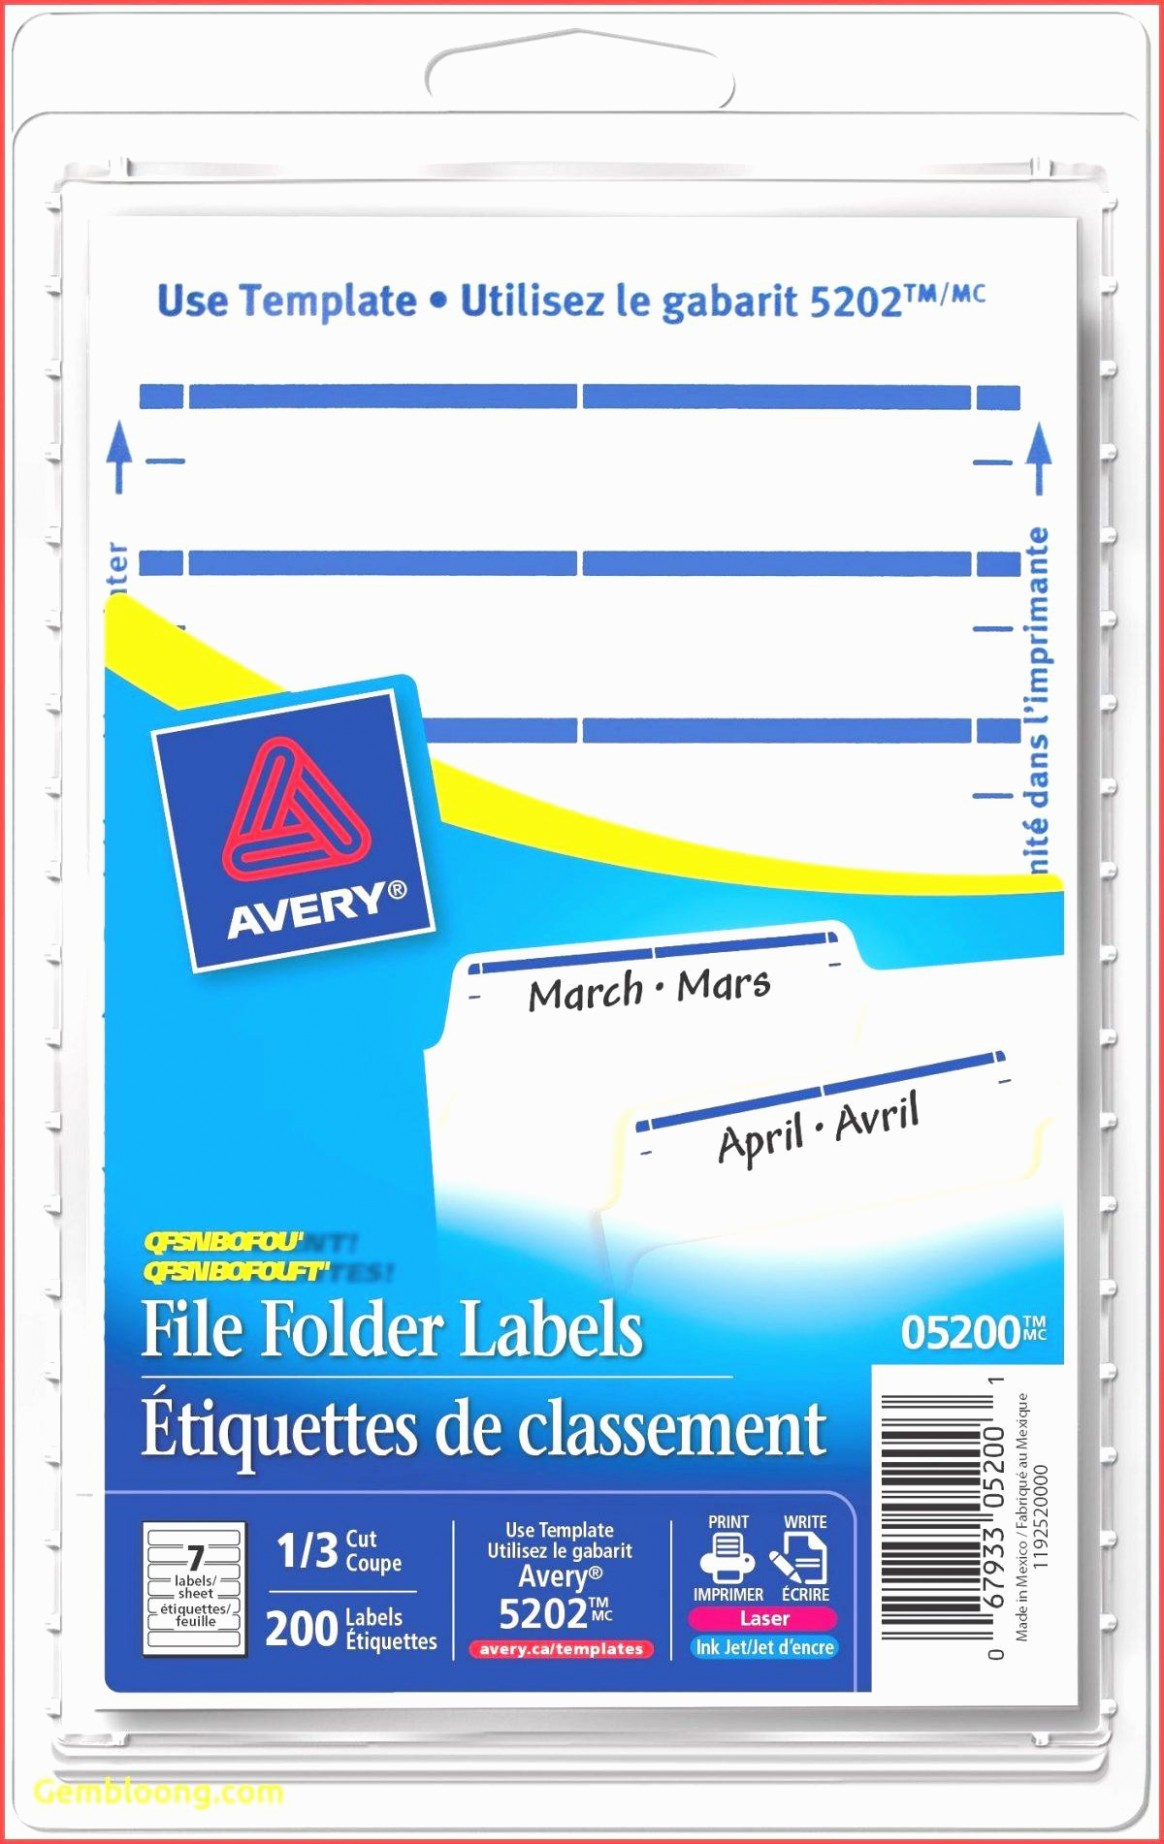 Avery 30 Up Label Template Beautiful 15 Brilliant Ways to Advertise